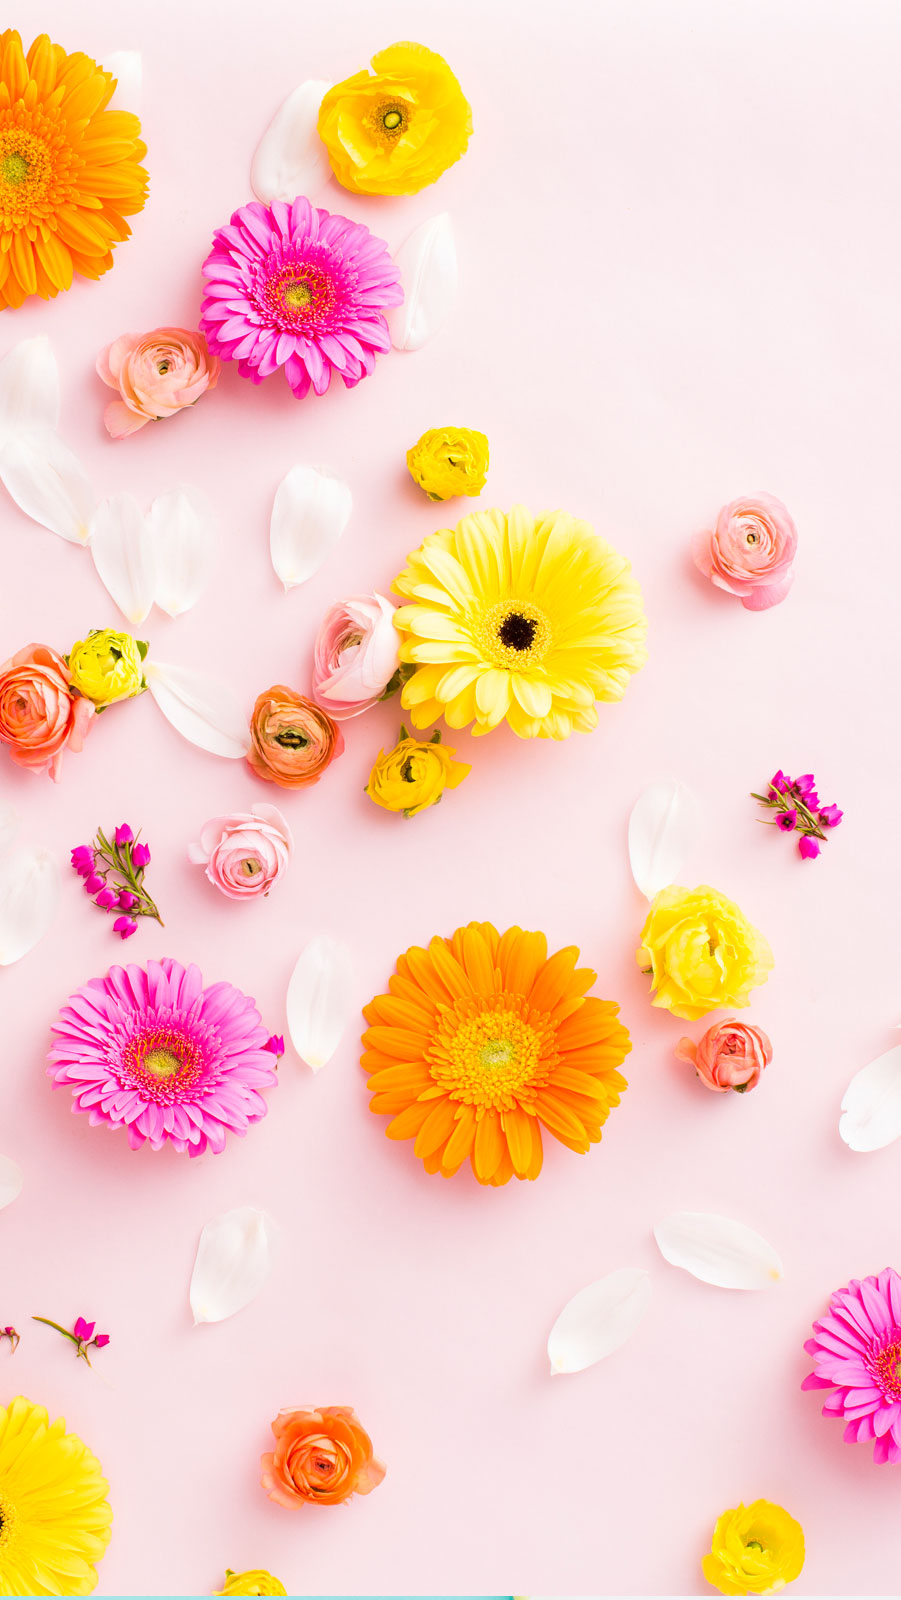 9 brand new desktop and smartphone wallpapers for spring - Flower wallpaper for your phone ...